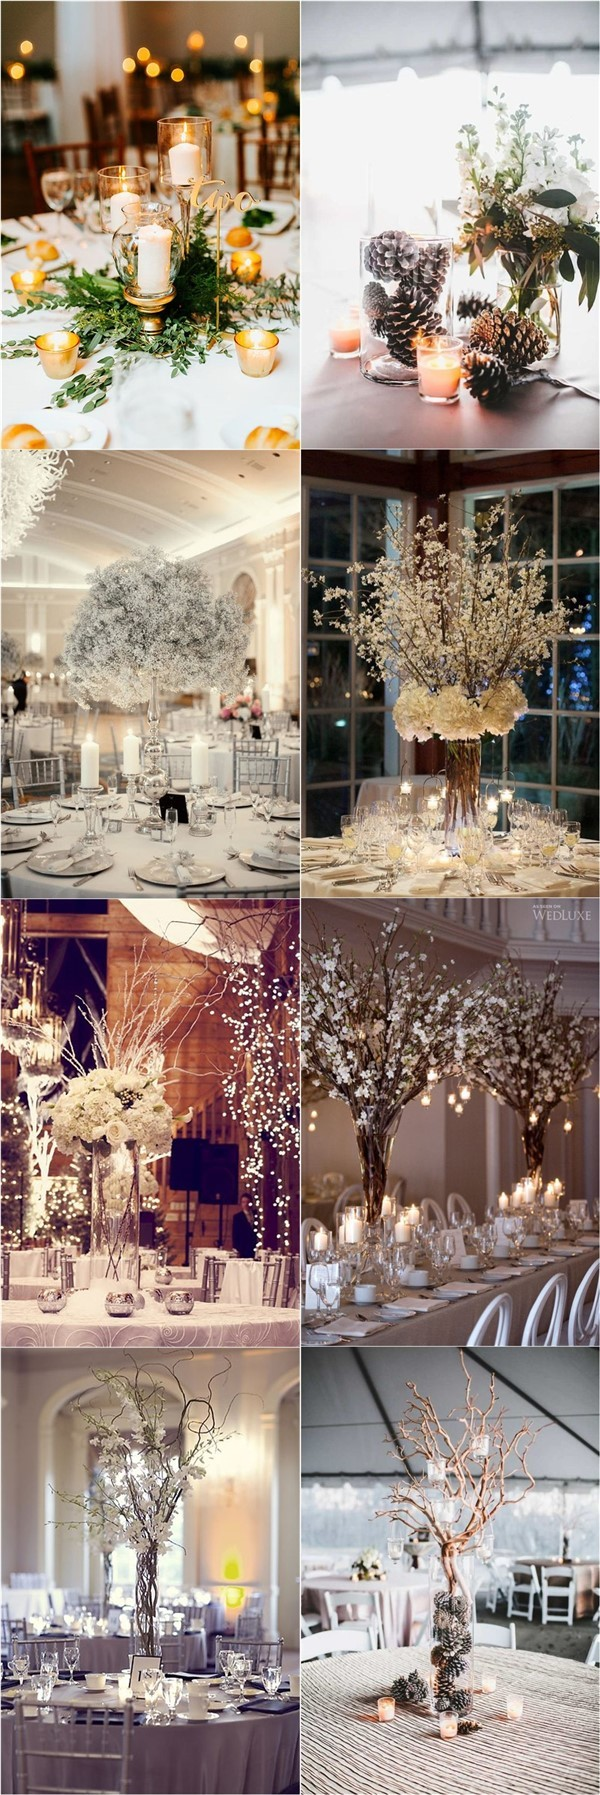 19 Winter Wedding Centerpieces to Warm Your Big Day Up